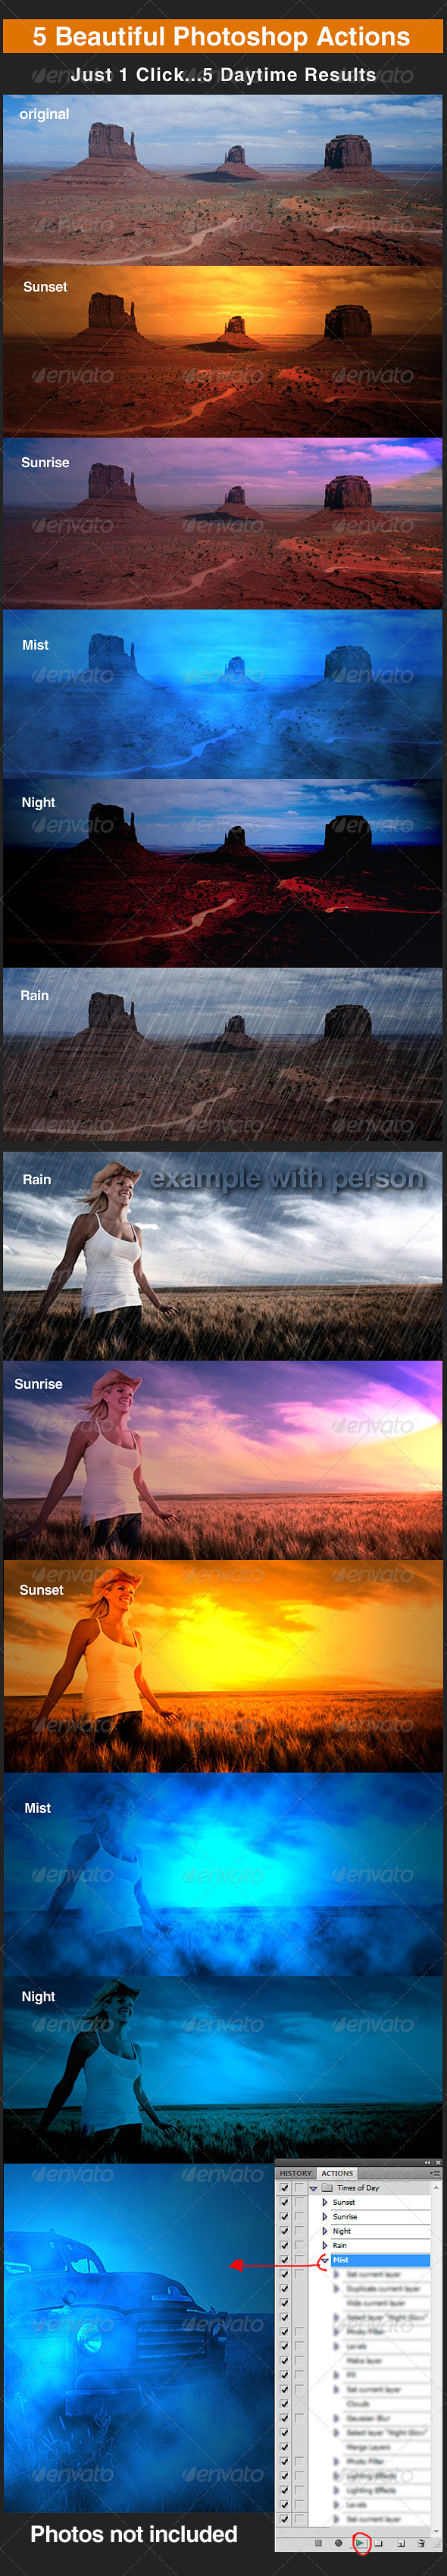 Photoshop Daytime Action Set - Photo Effects Actions